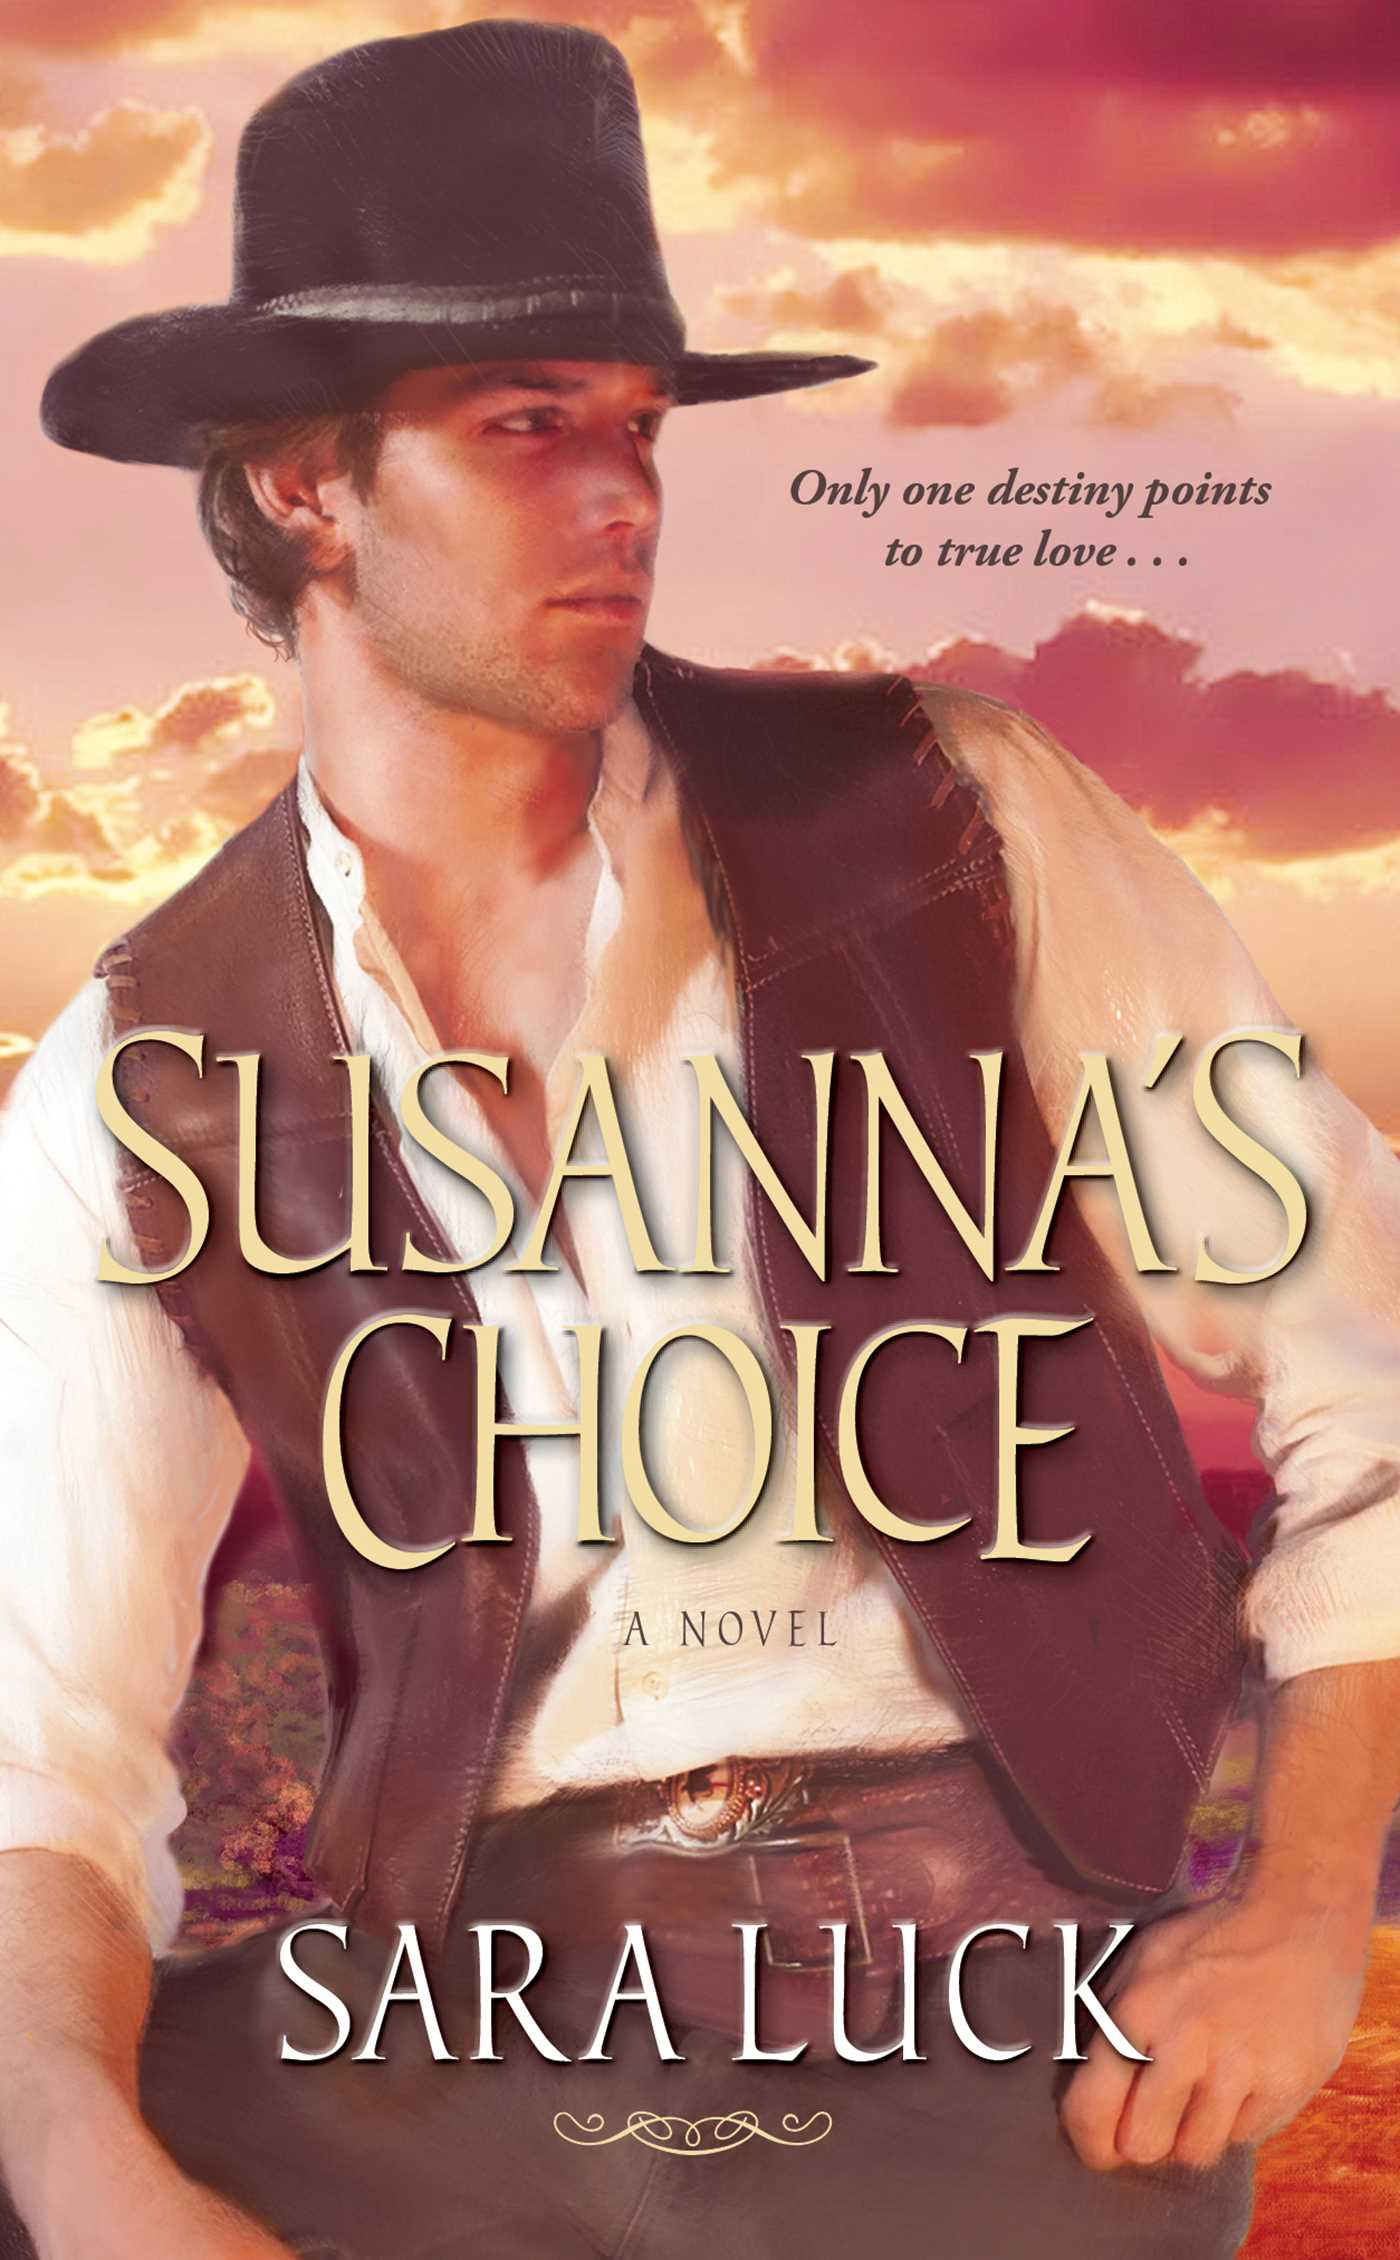 Susannas-choice-9781451650433_hr